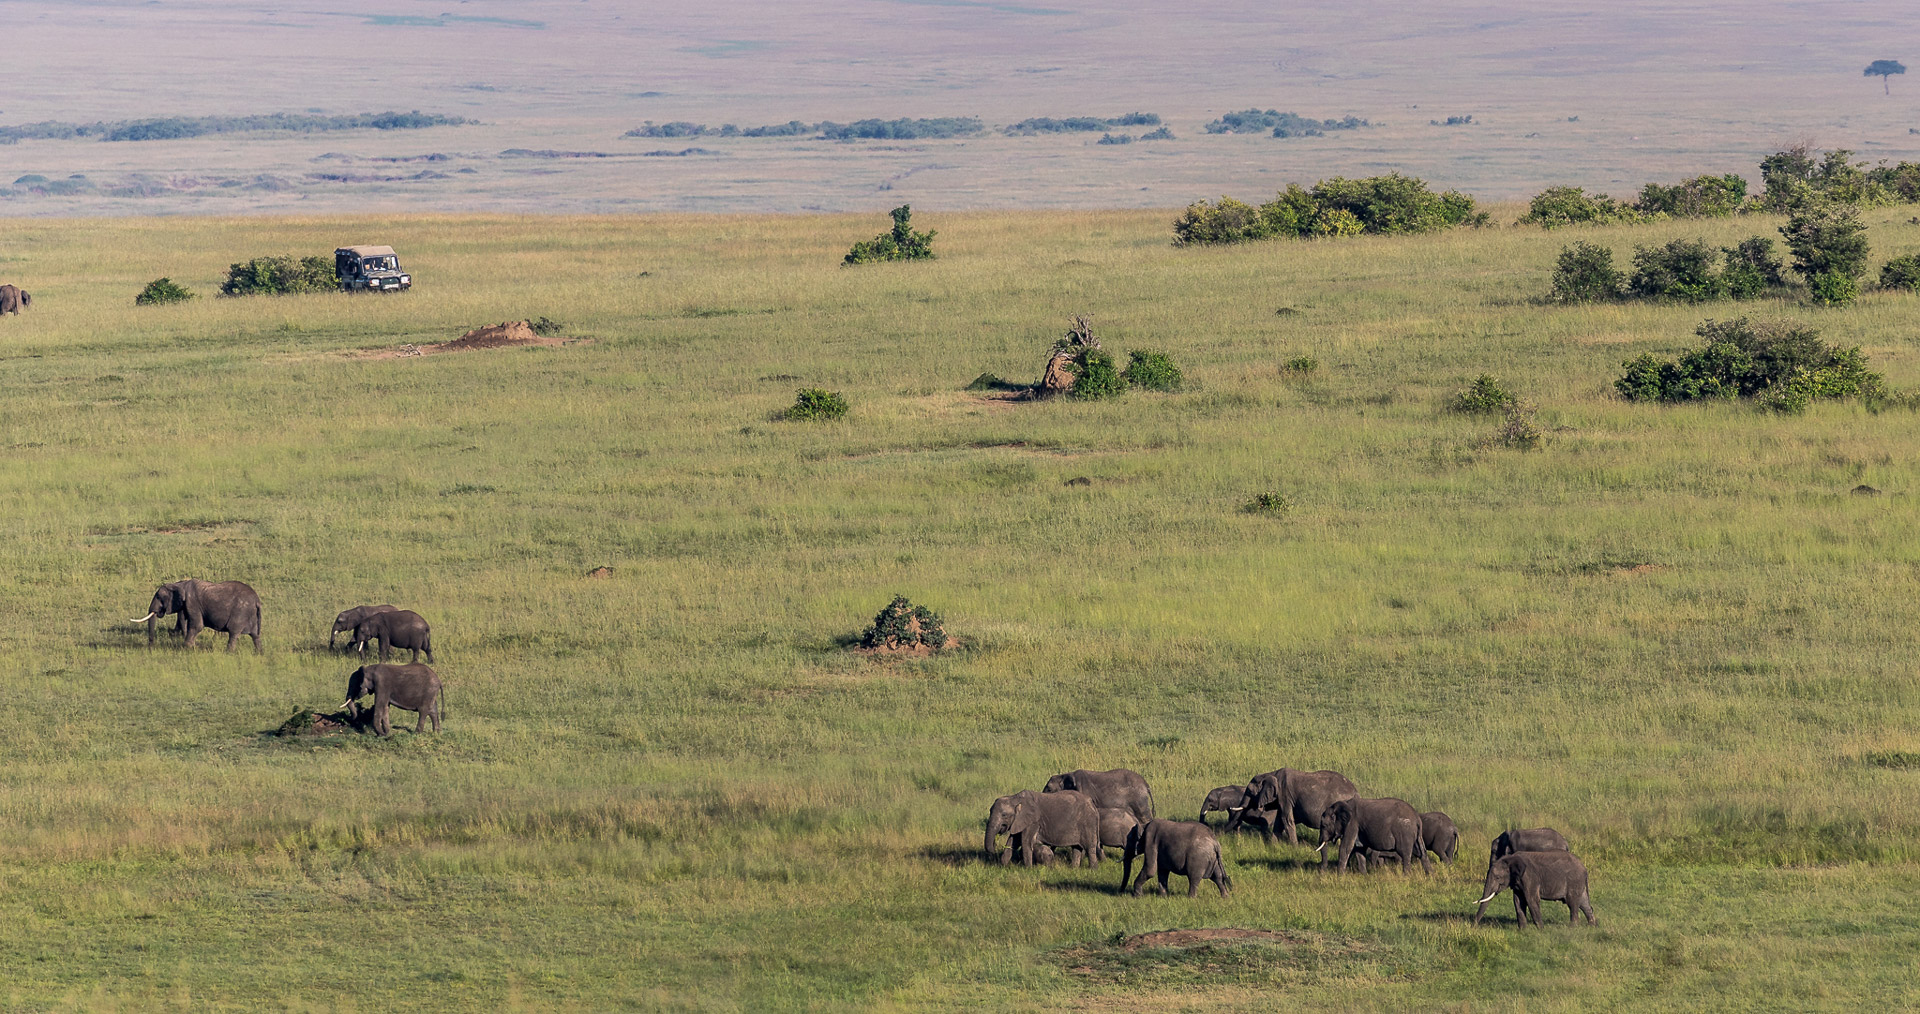 An elephant herd making their way over the plains of the Maasai Mara